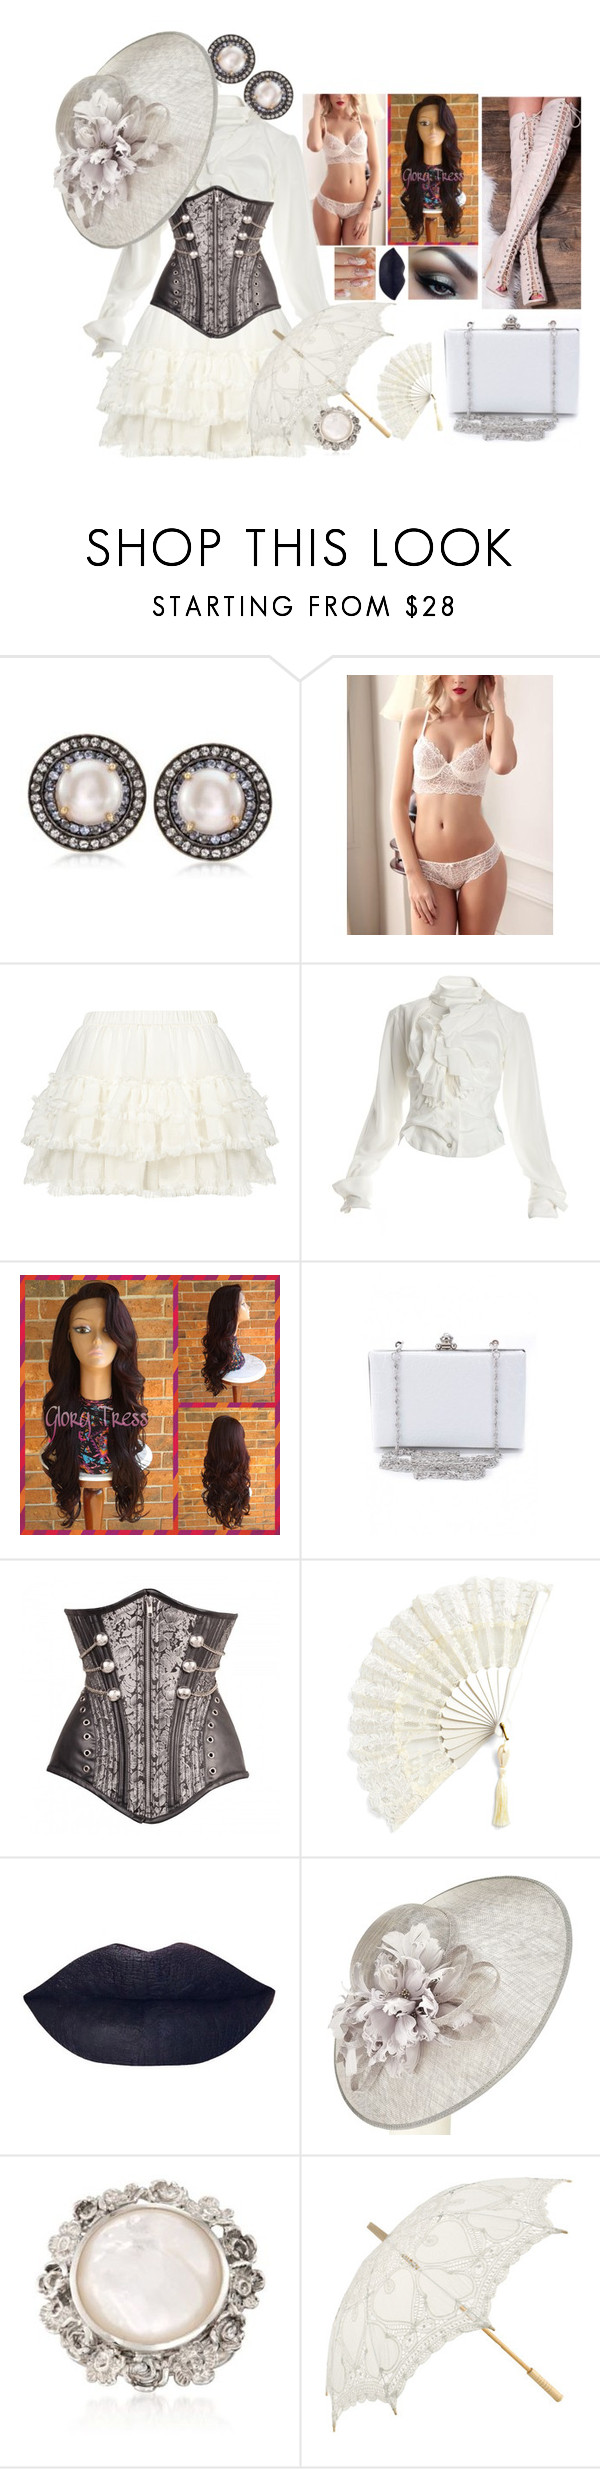 """""""Untitled #999"""" by darkestofgrace ❤ liked on Polyvore featuring Ross-Simons, Vivienne Westwood and John Lewis"""